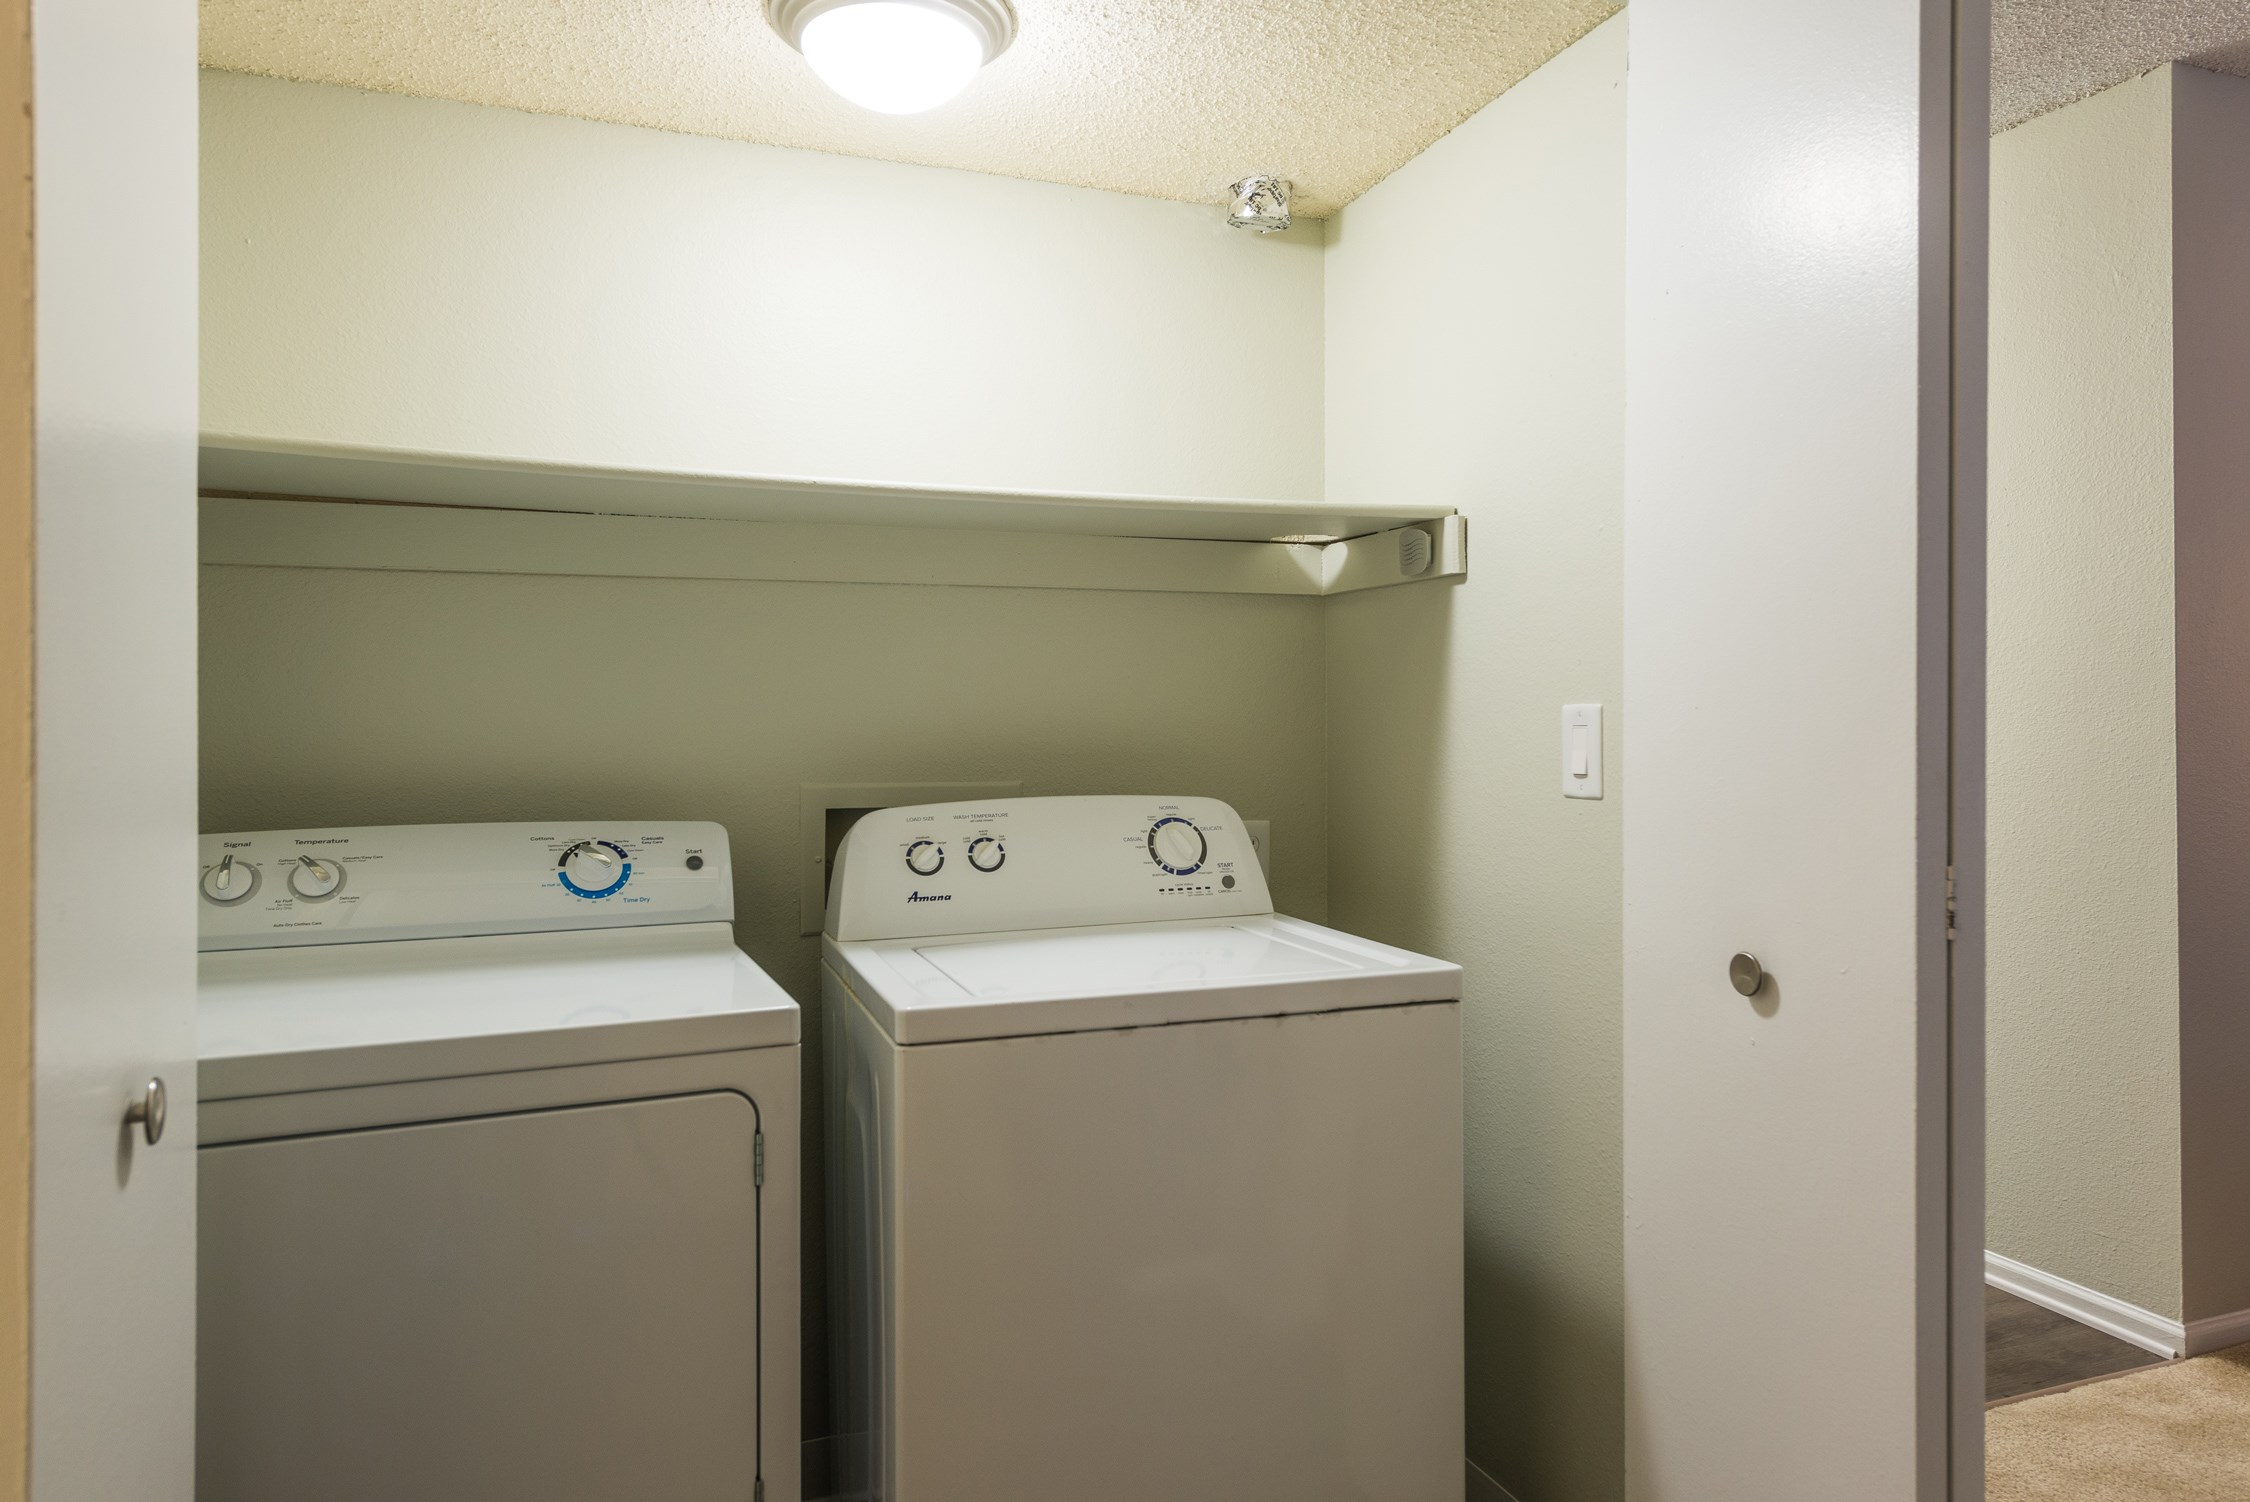 Laundry Room at Conifer Creek Apartments in Aurora, IL